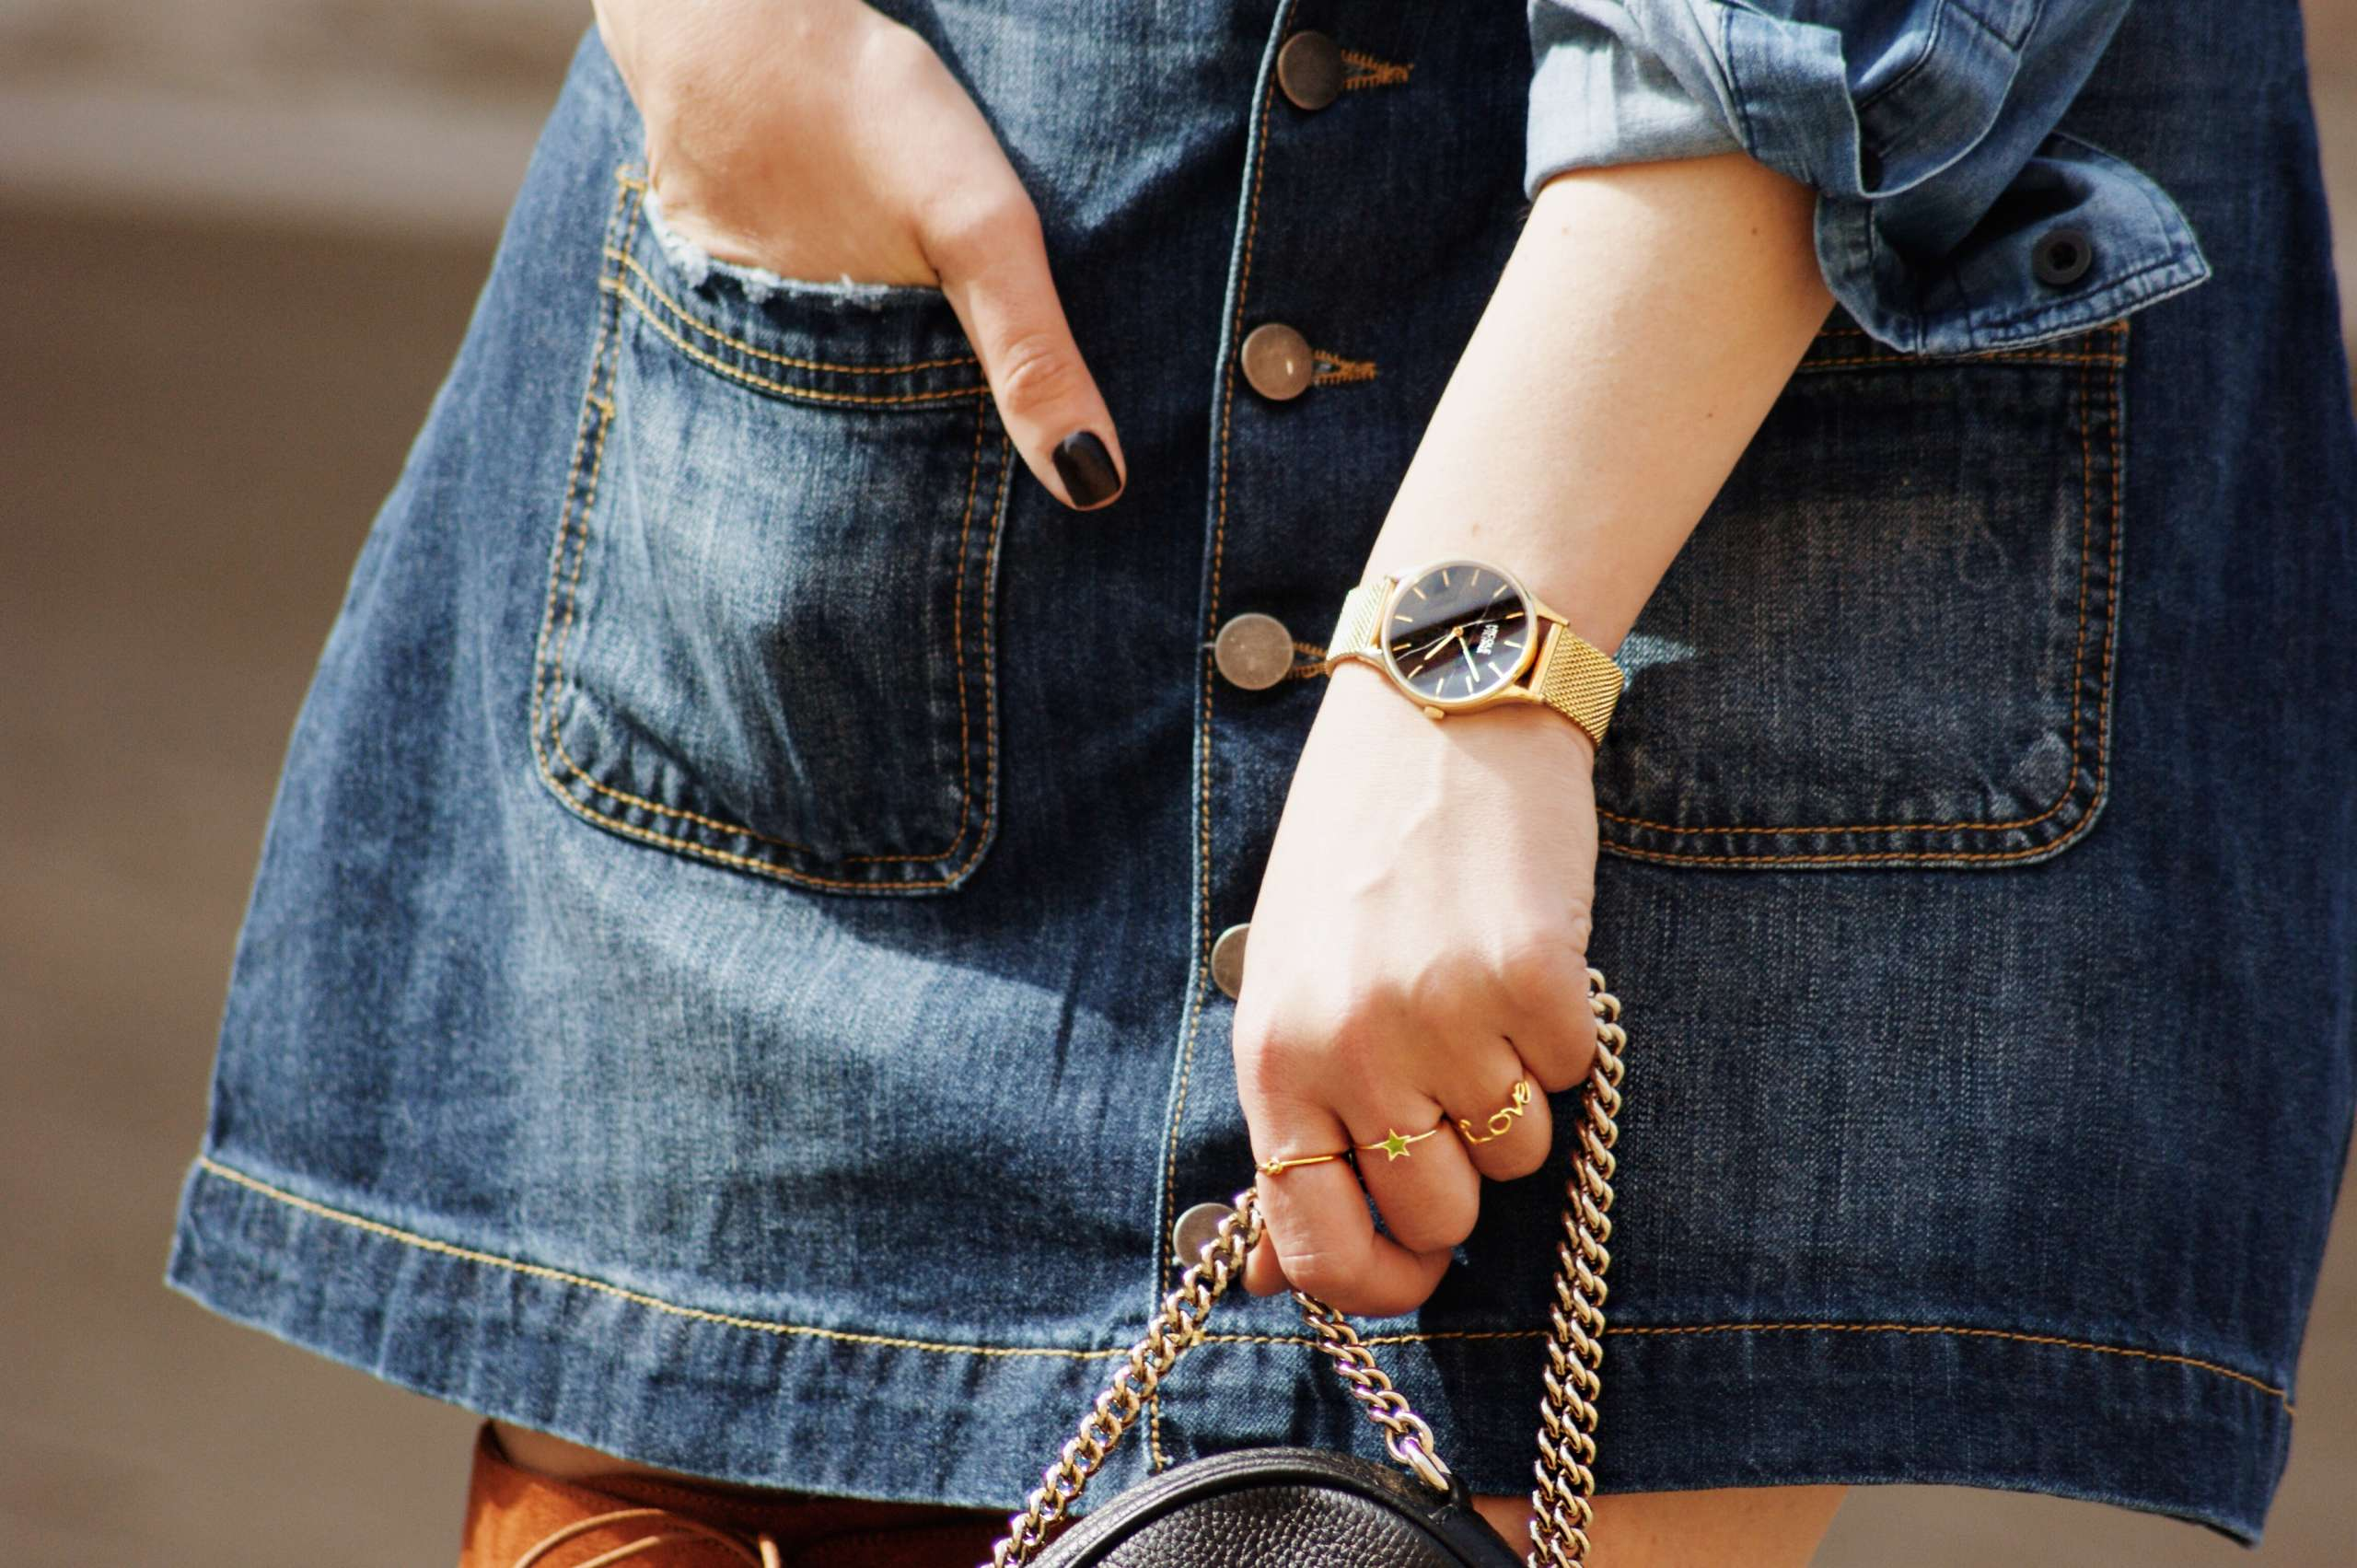 A-line-denim-skirt-denim-on-denim-denim-shirt-dricoper-gucci-knot-ring-laura-gravestock-love-ring-nicole-vienna-OVER-THE-KNEE-BOOTS-soho-leather-mini-chain-black-soir-n79-mesh-gold-star-ring-tan-suede